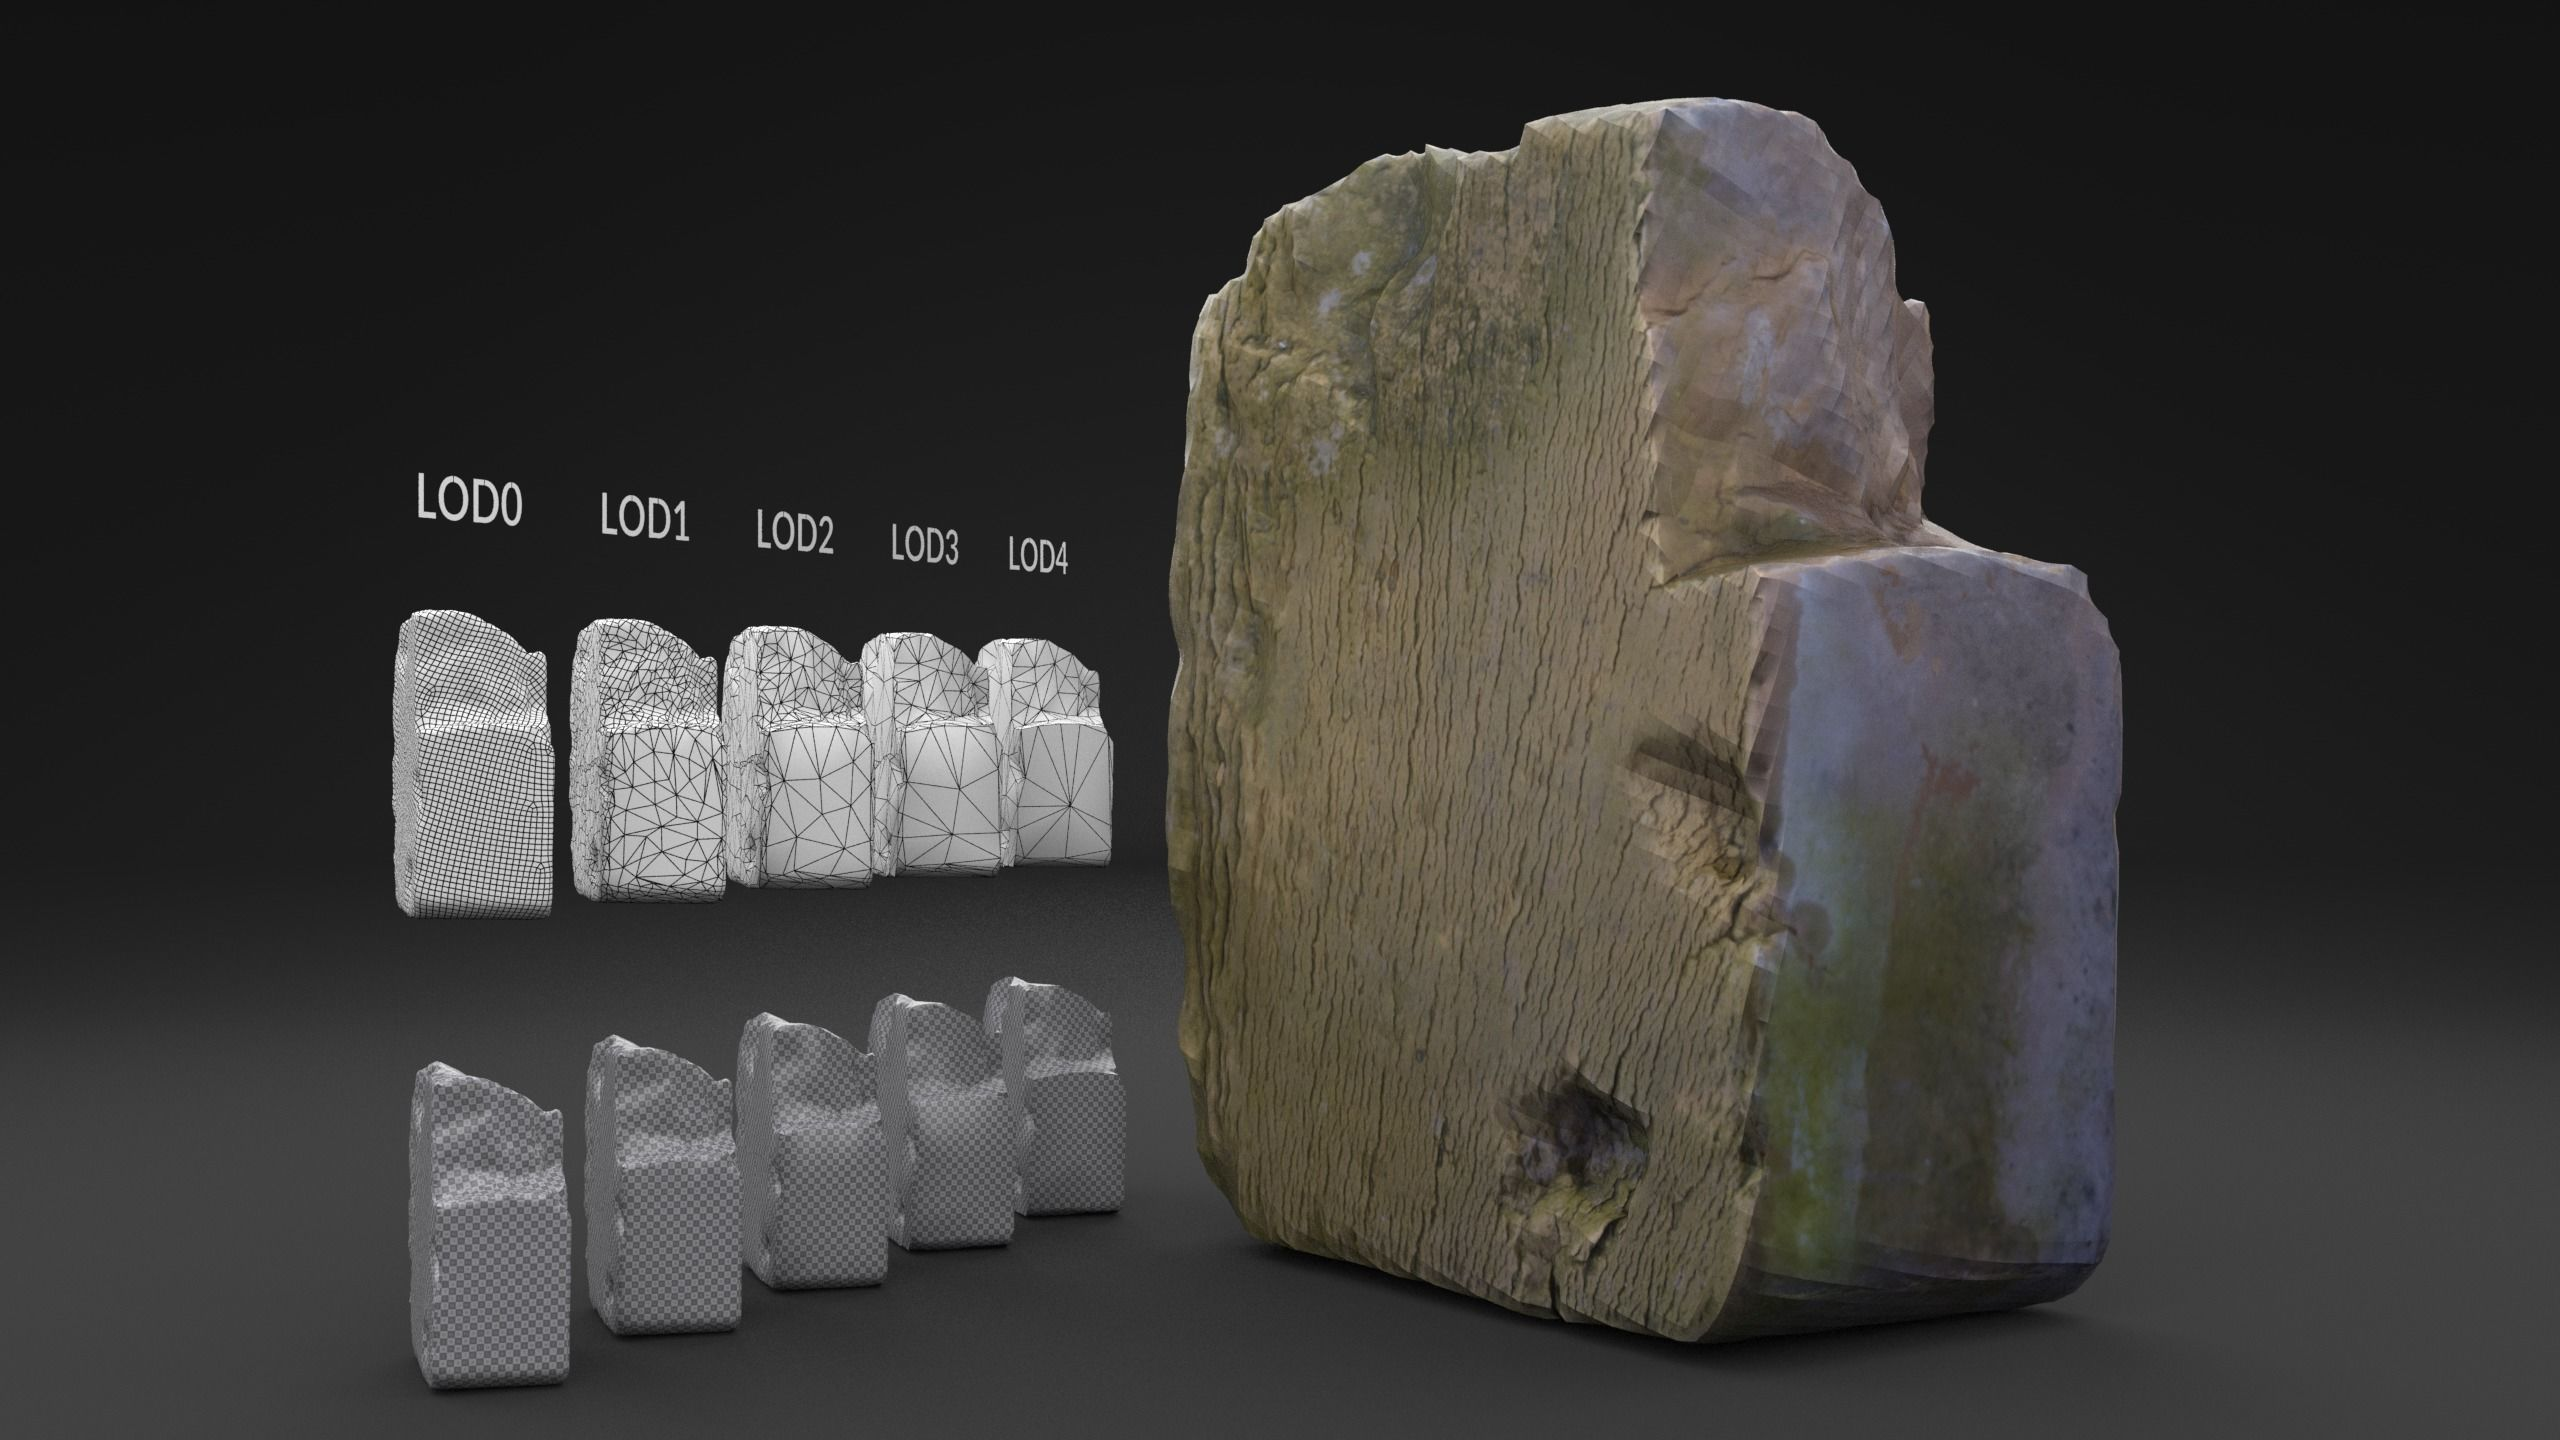 Scanned Old Half Red Brick LOW POLY LODs